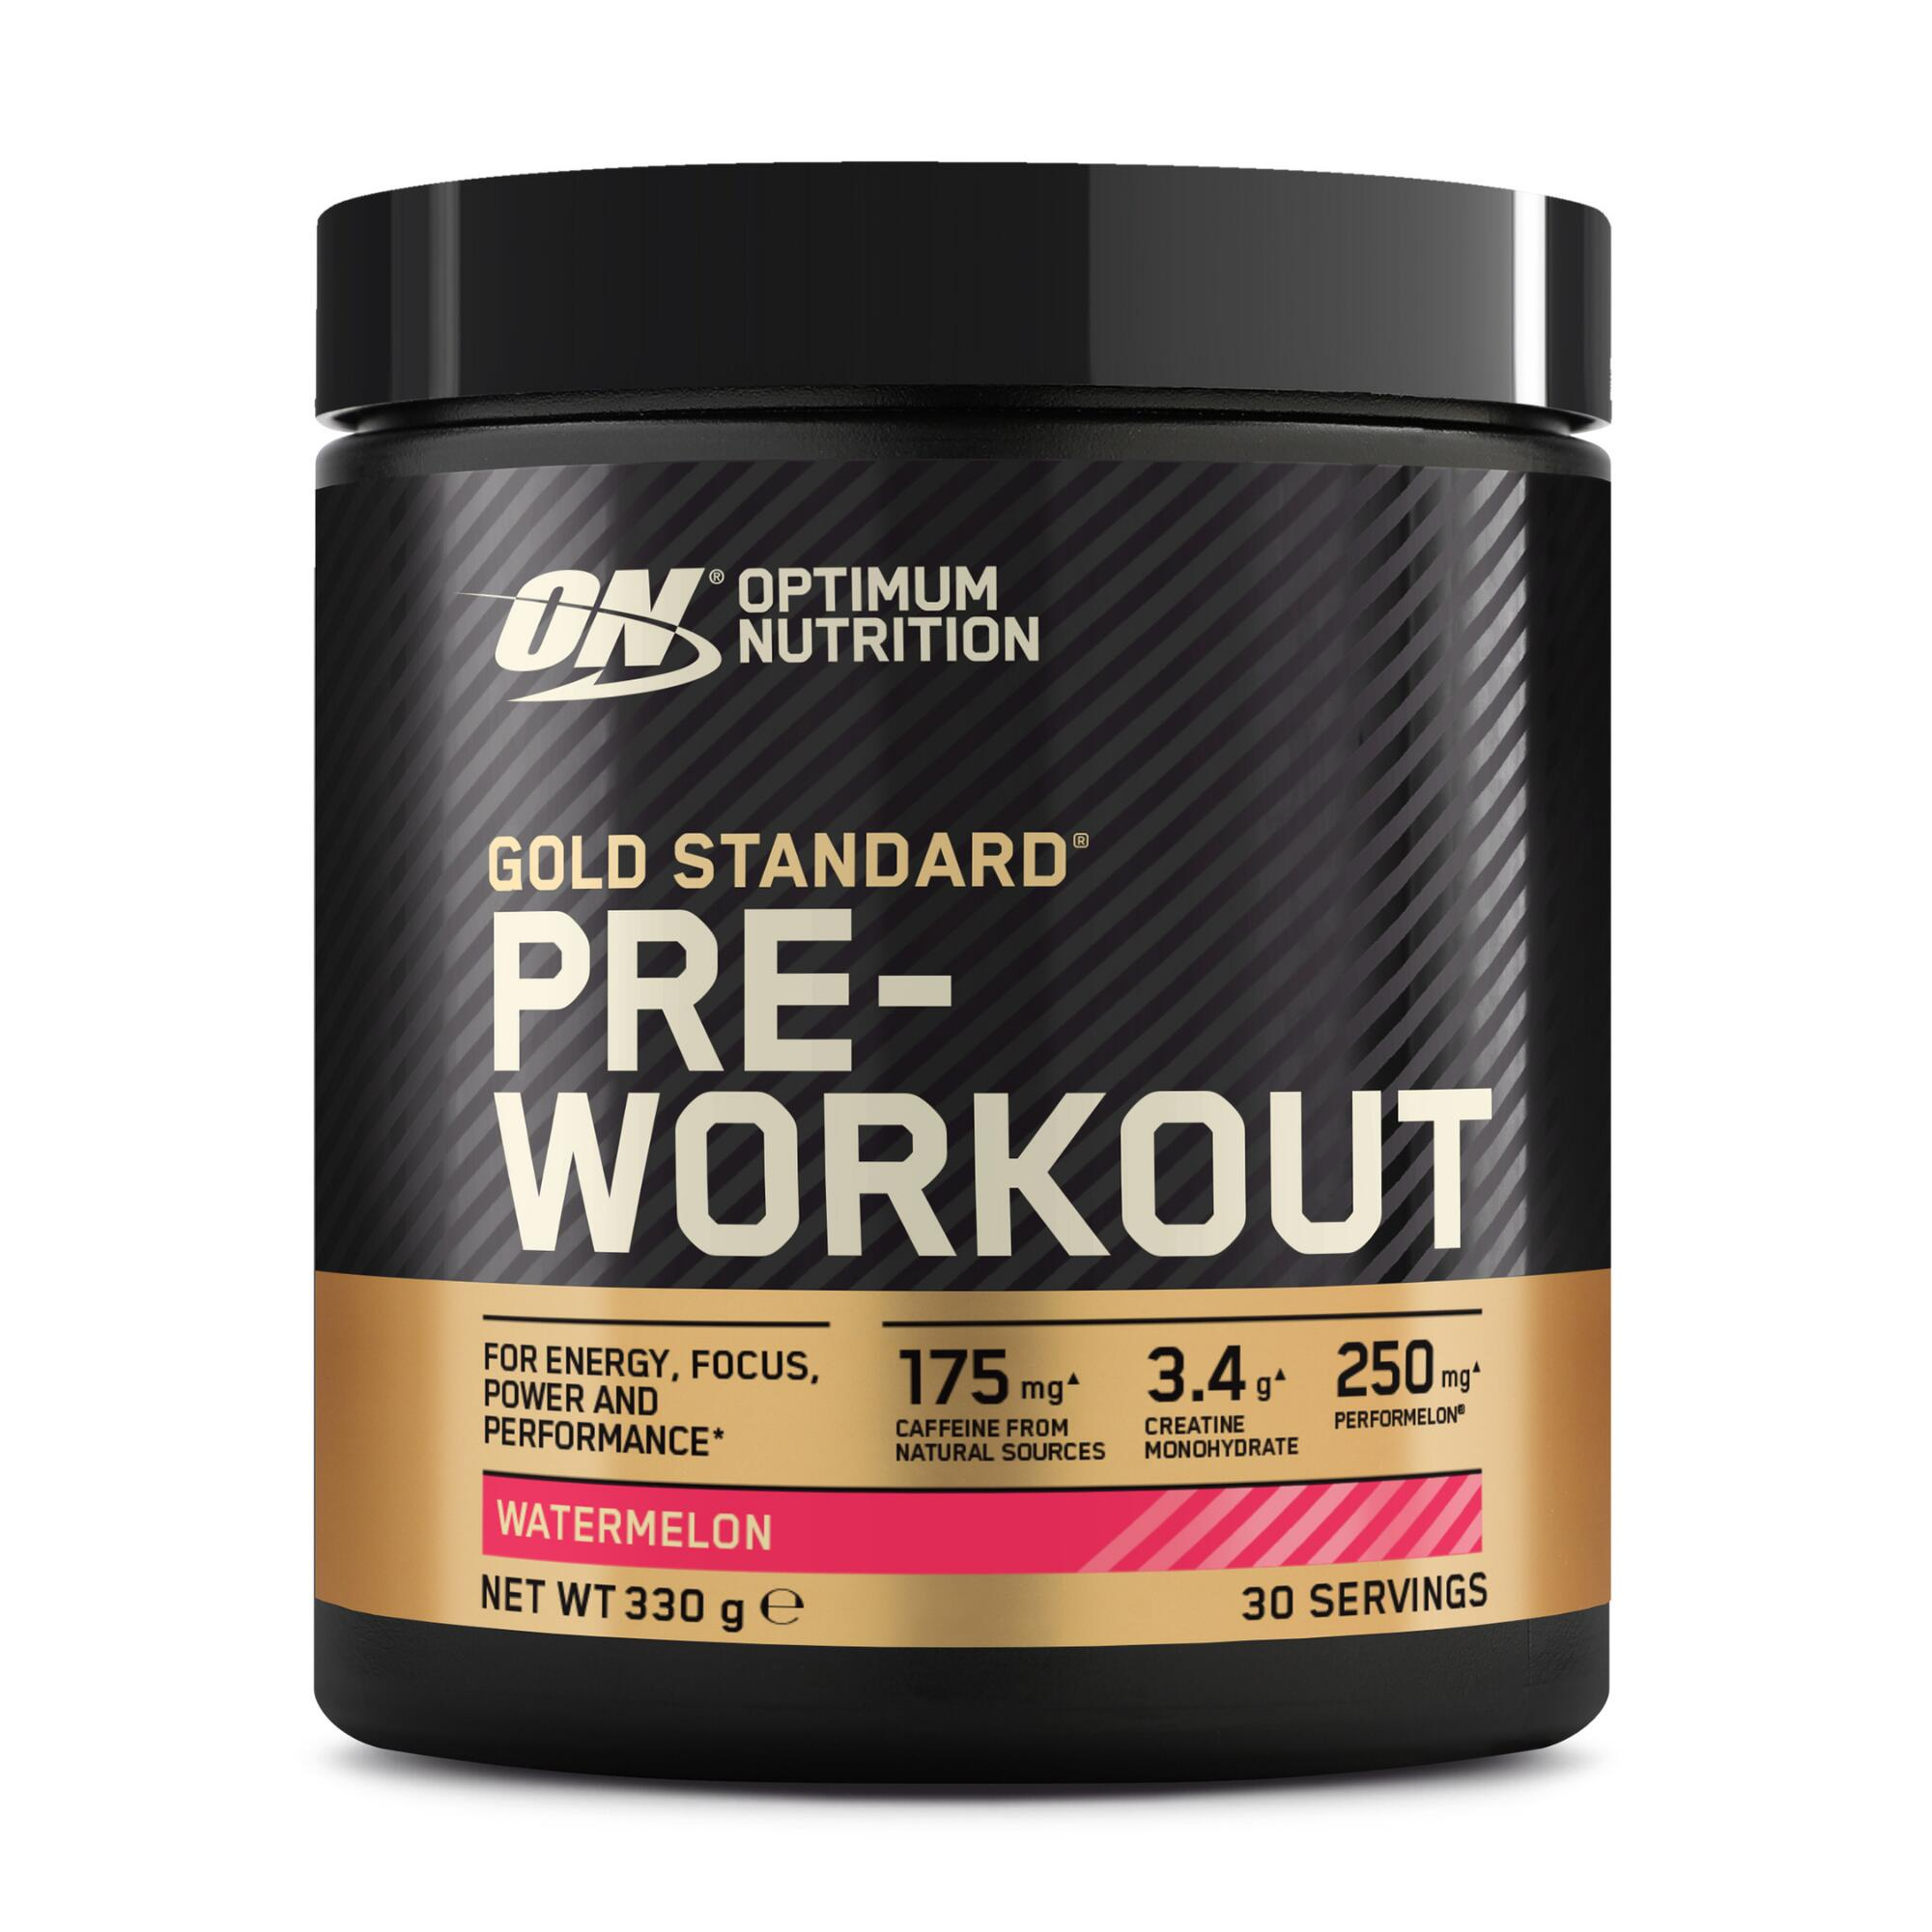 Pudră Pre-Workout Optimum 330g de la OPTIMUM NUTRITION